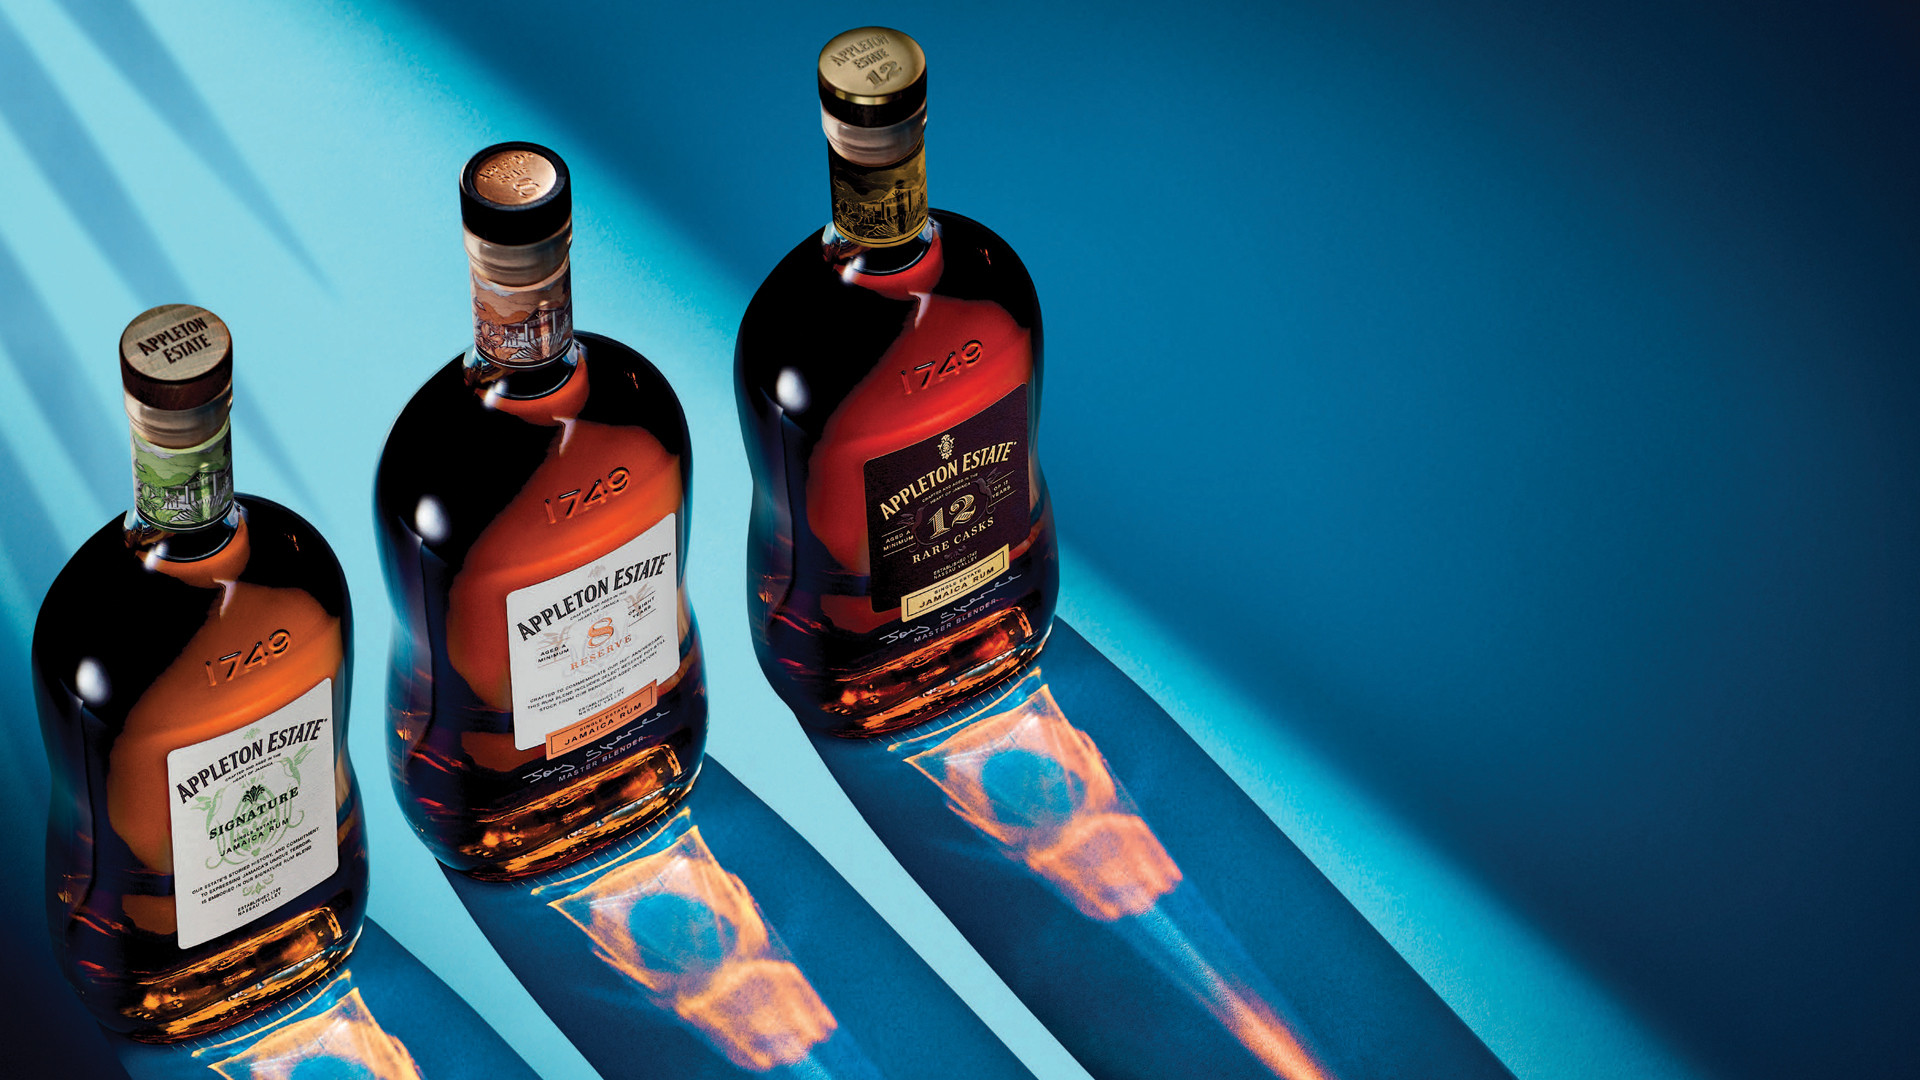 Appleton Estate Rum: the rum portfolio